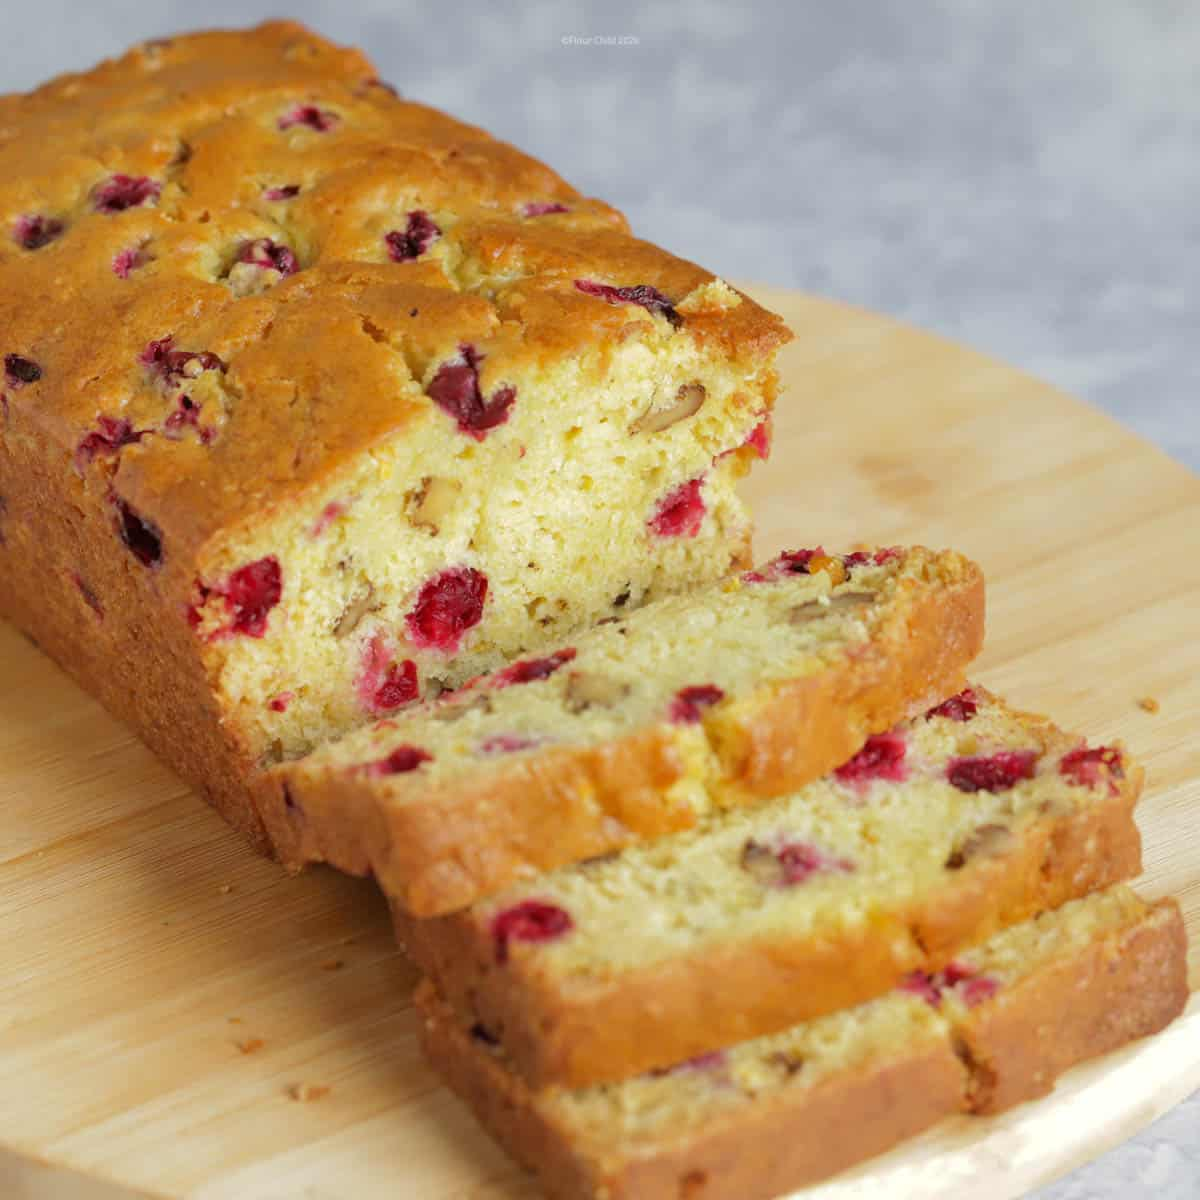 A loaf of cranberry orange quick bread on a cutting board with 3 slices cut off